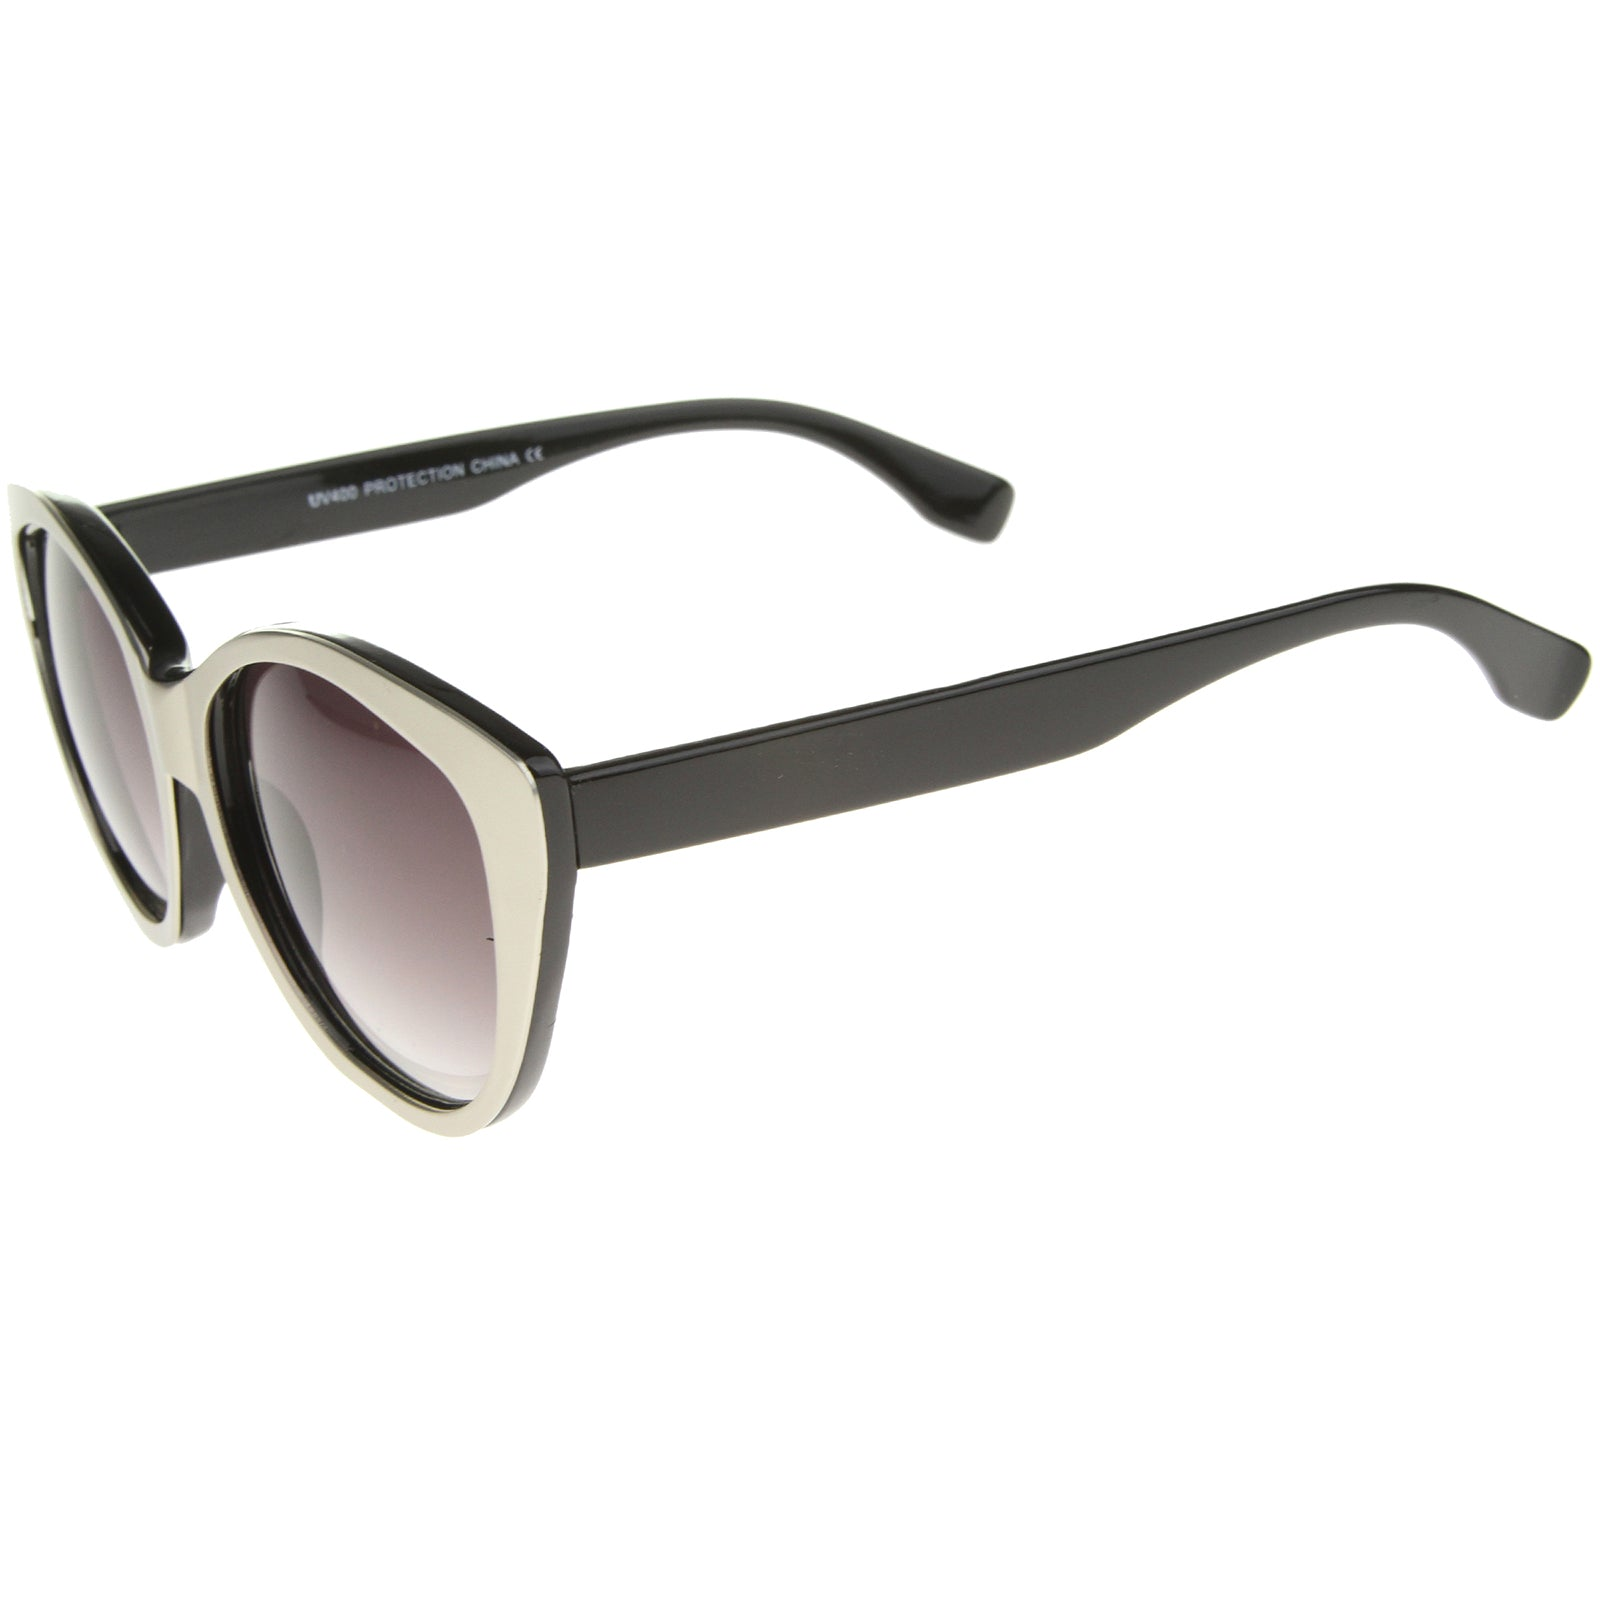 Women's High Fashion Two-Toned Tinted Lens Oversize Cat Eye Sunglasses 55mm - sunglass.la - 7